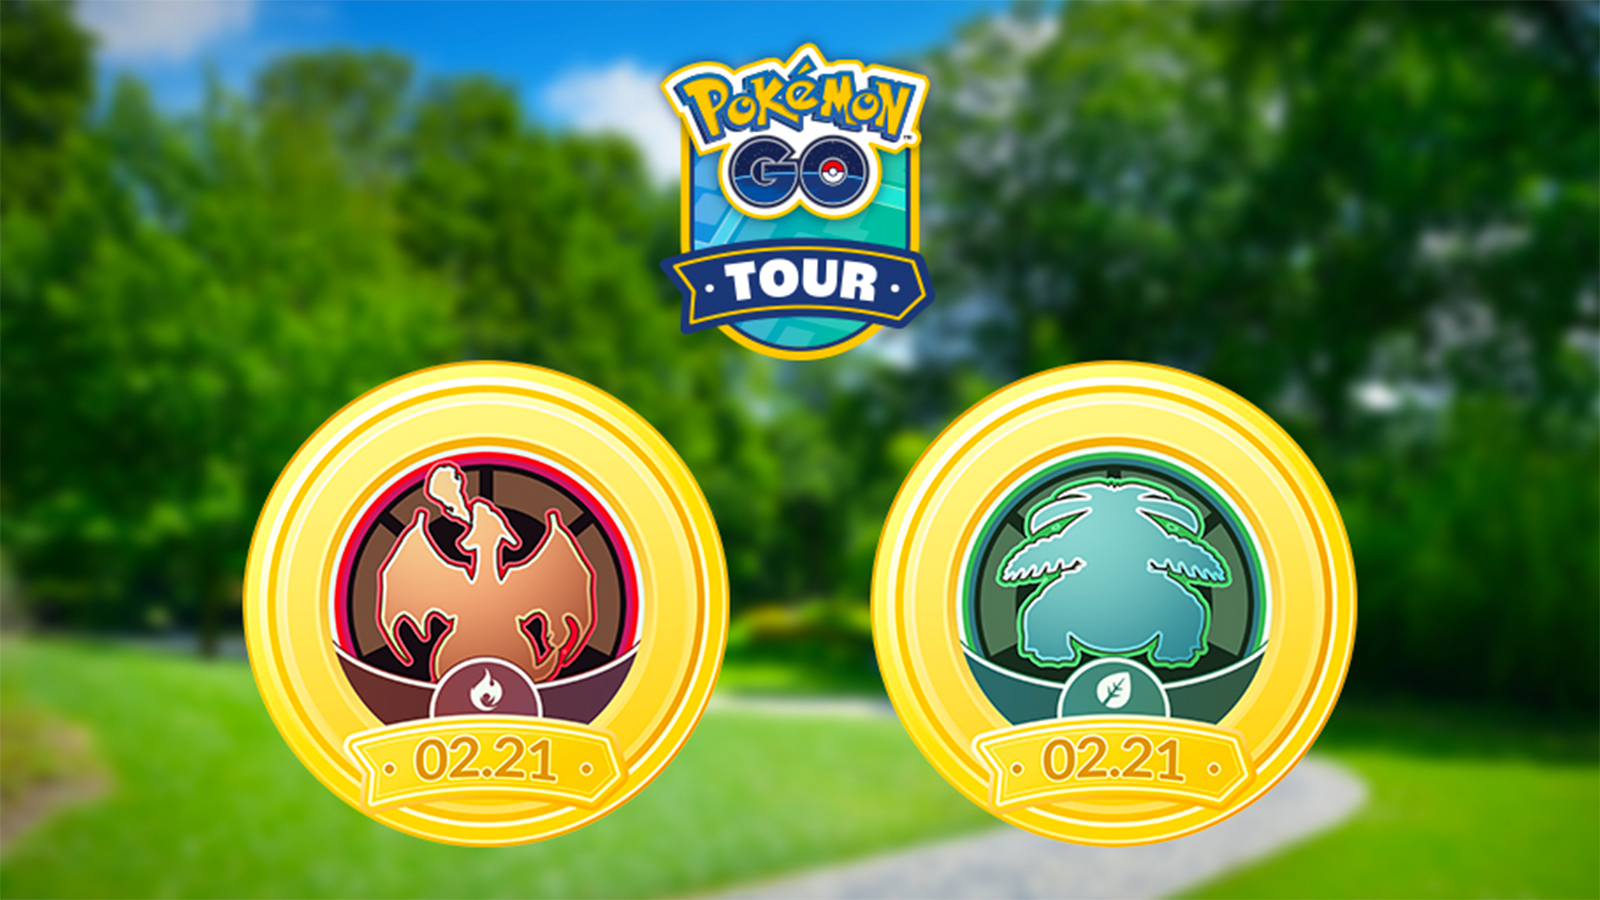 Pokemon Go Tour Kanto